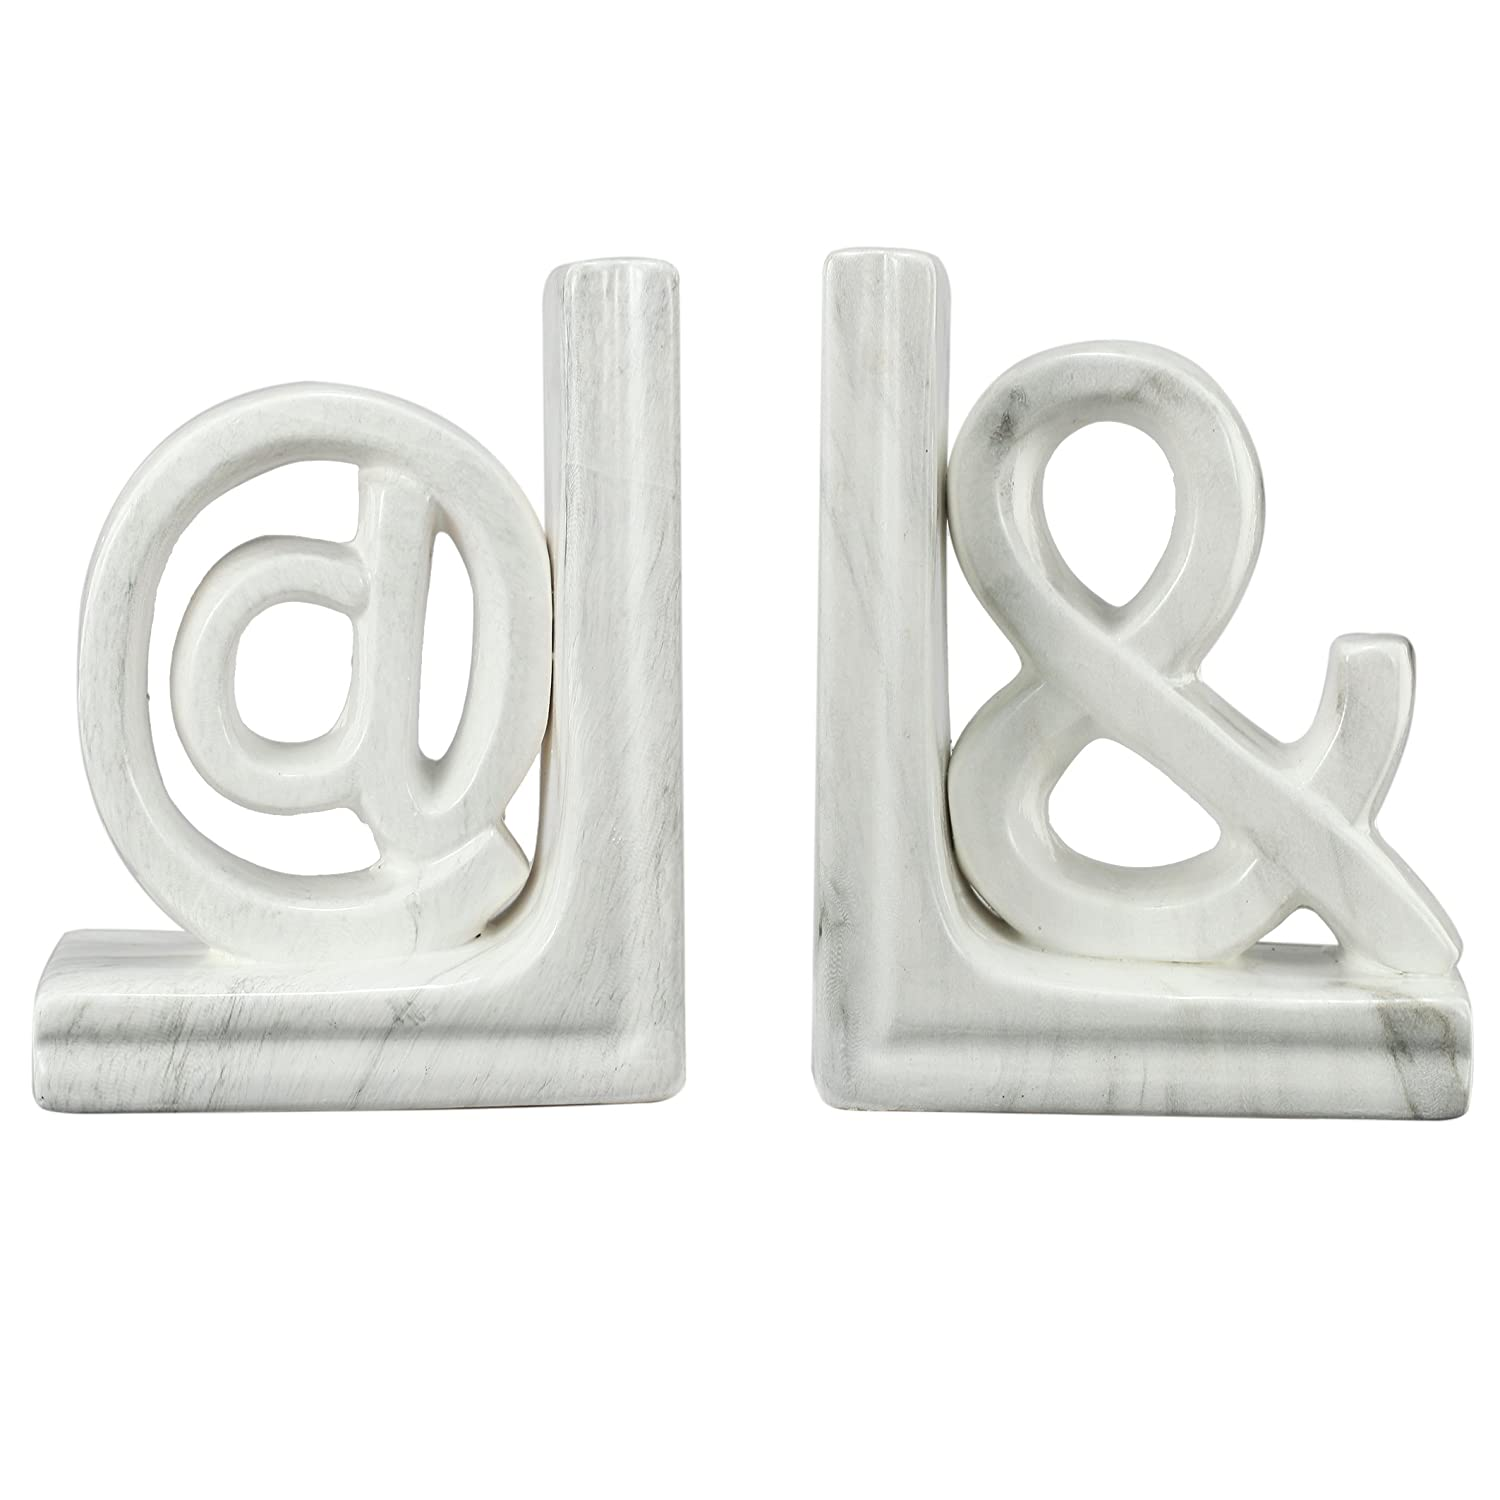 A&B Home Set of 2 Character Bookends